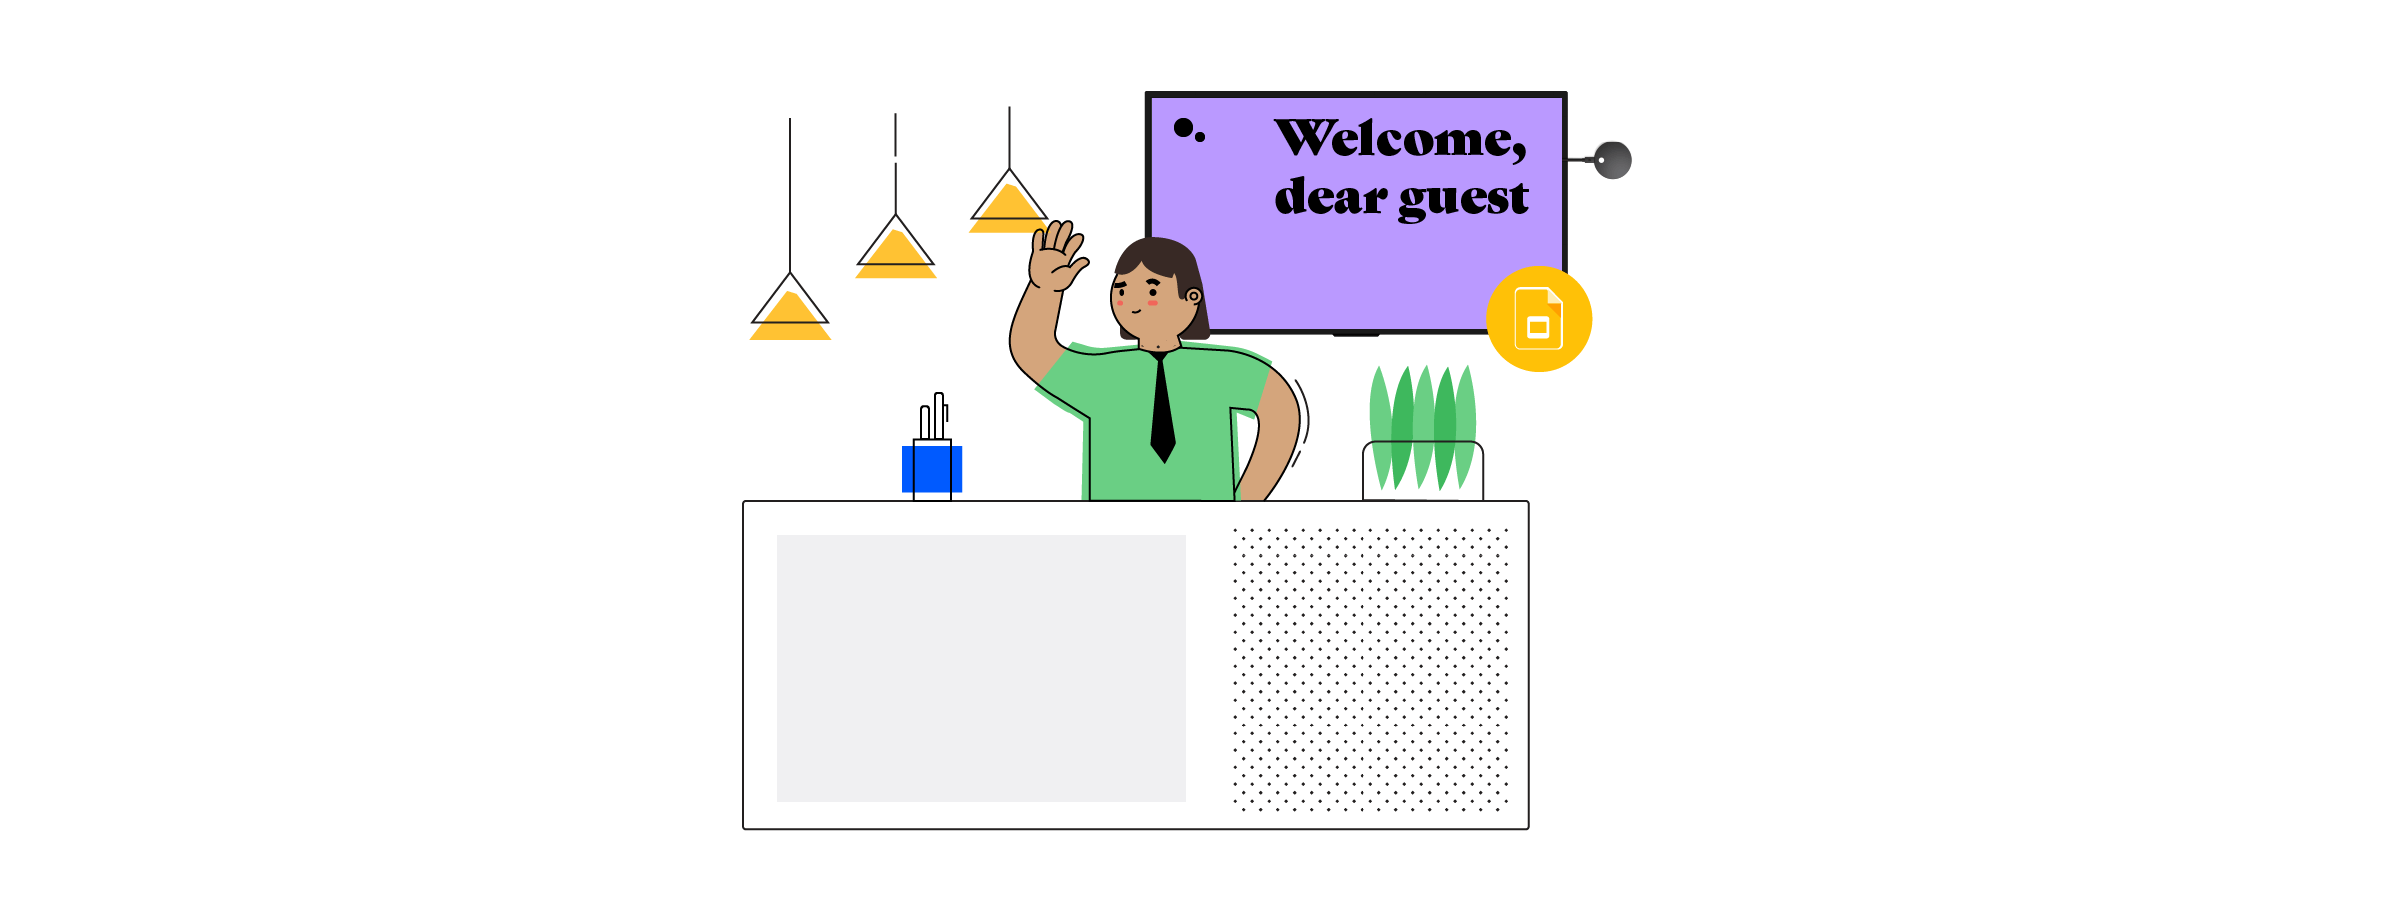 Make your mark with the Google Slides Airtame Cloud app